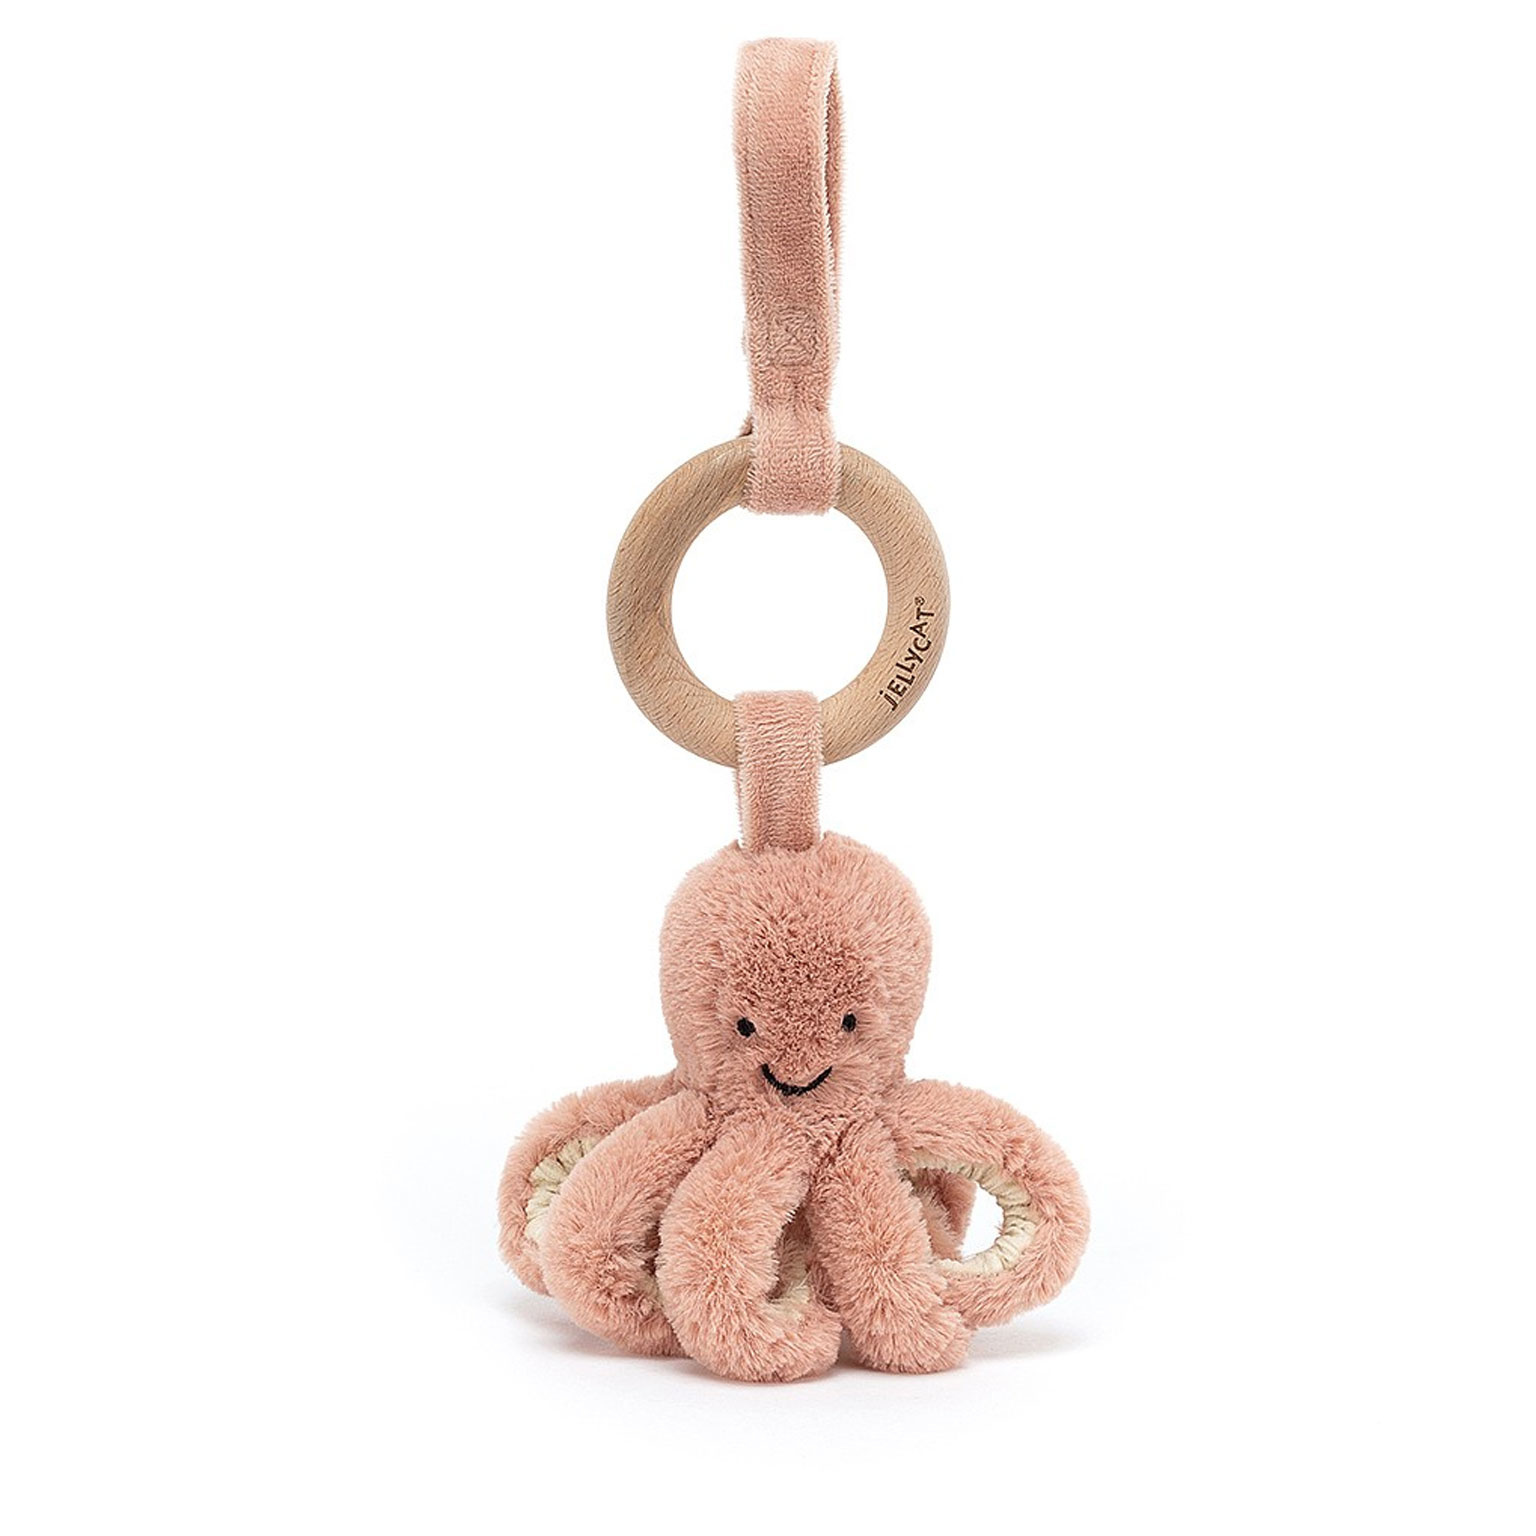 Jellycat knuffels Jellycat Odell octopus with wooden ring 21 cm